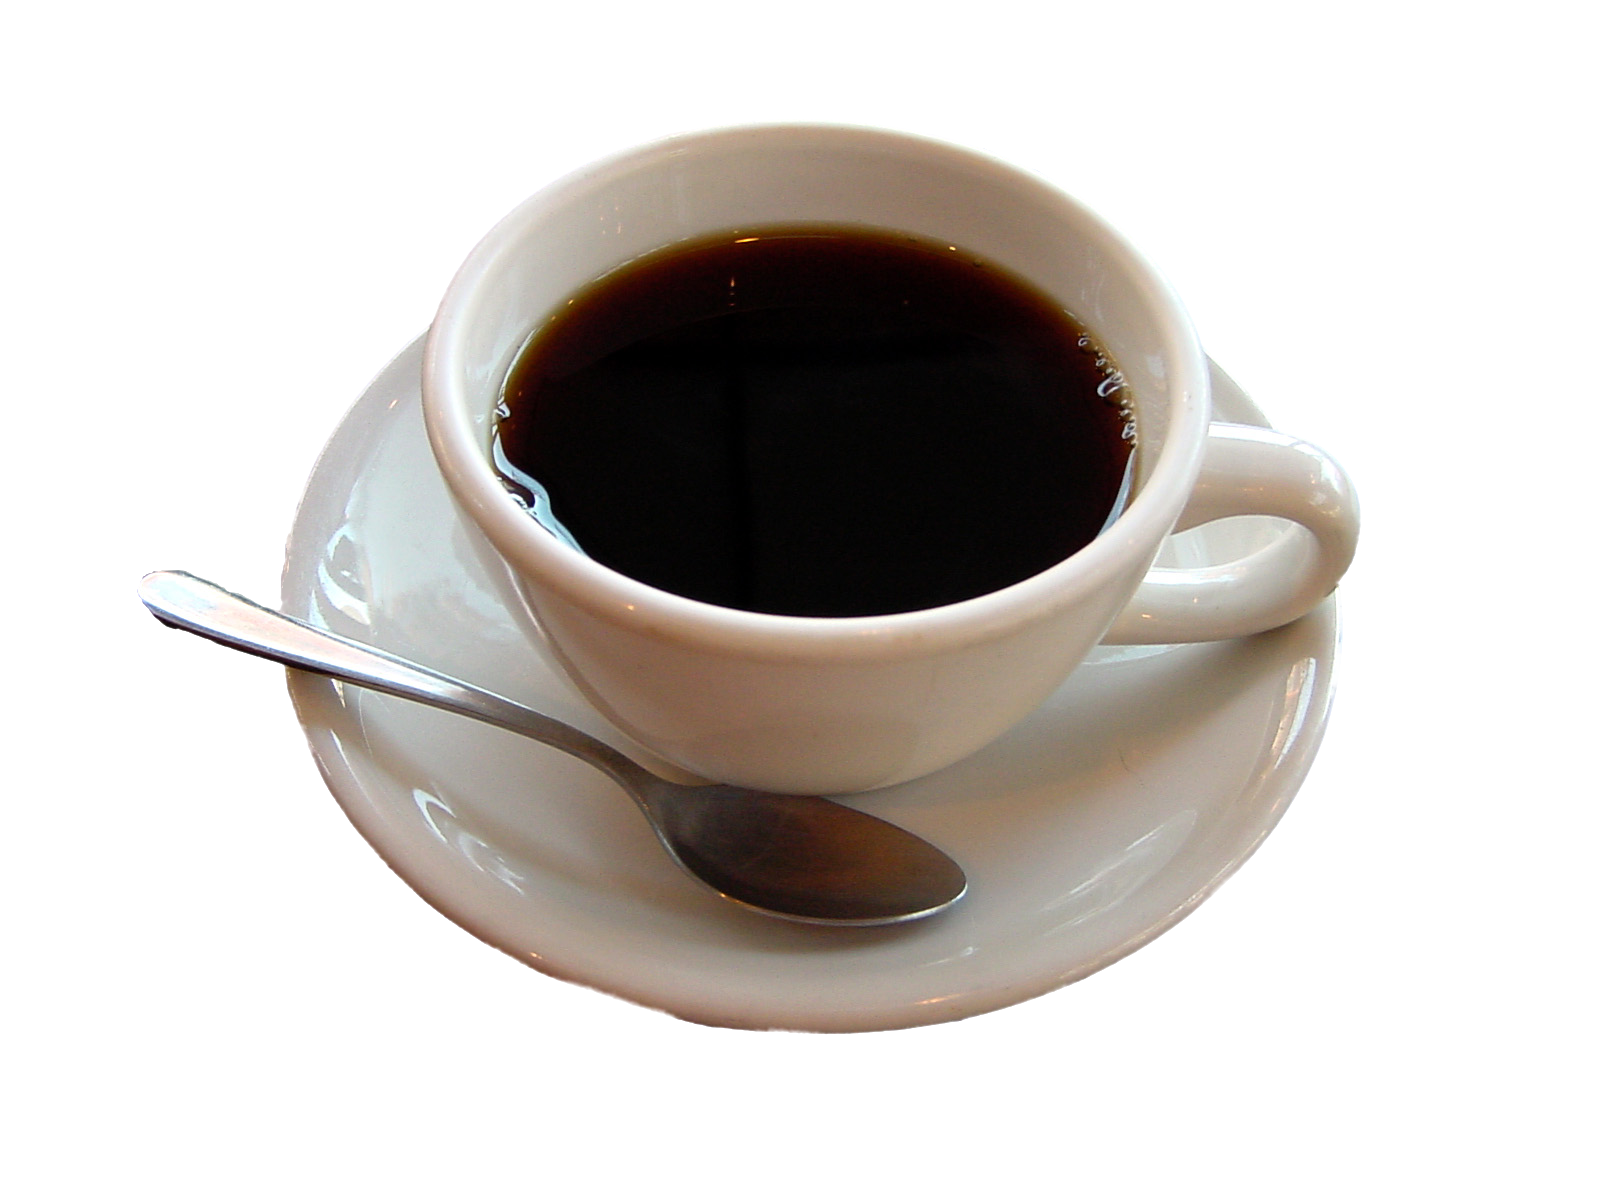 uploads mug coffee mug coffee PNG16831 64